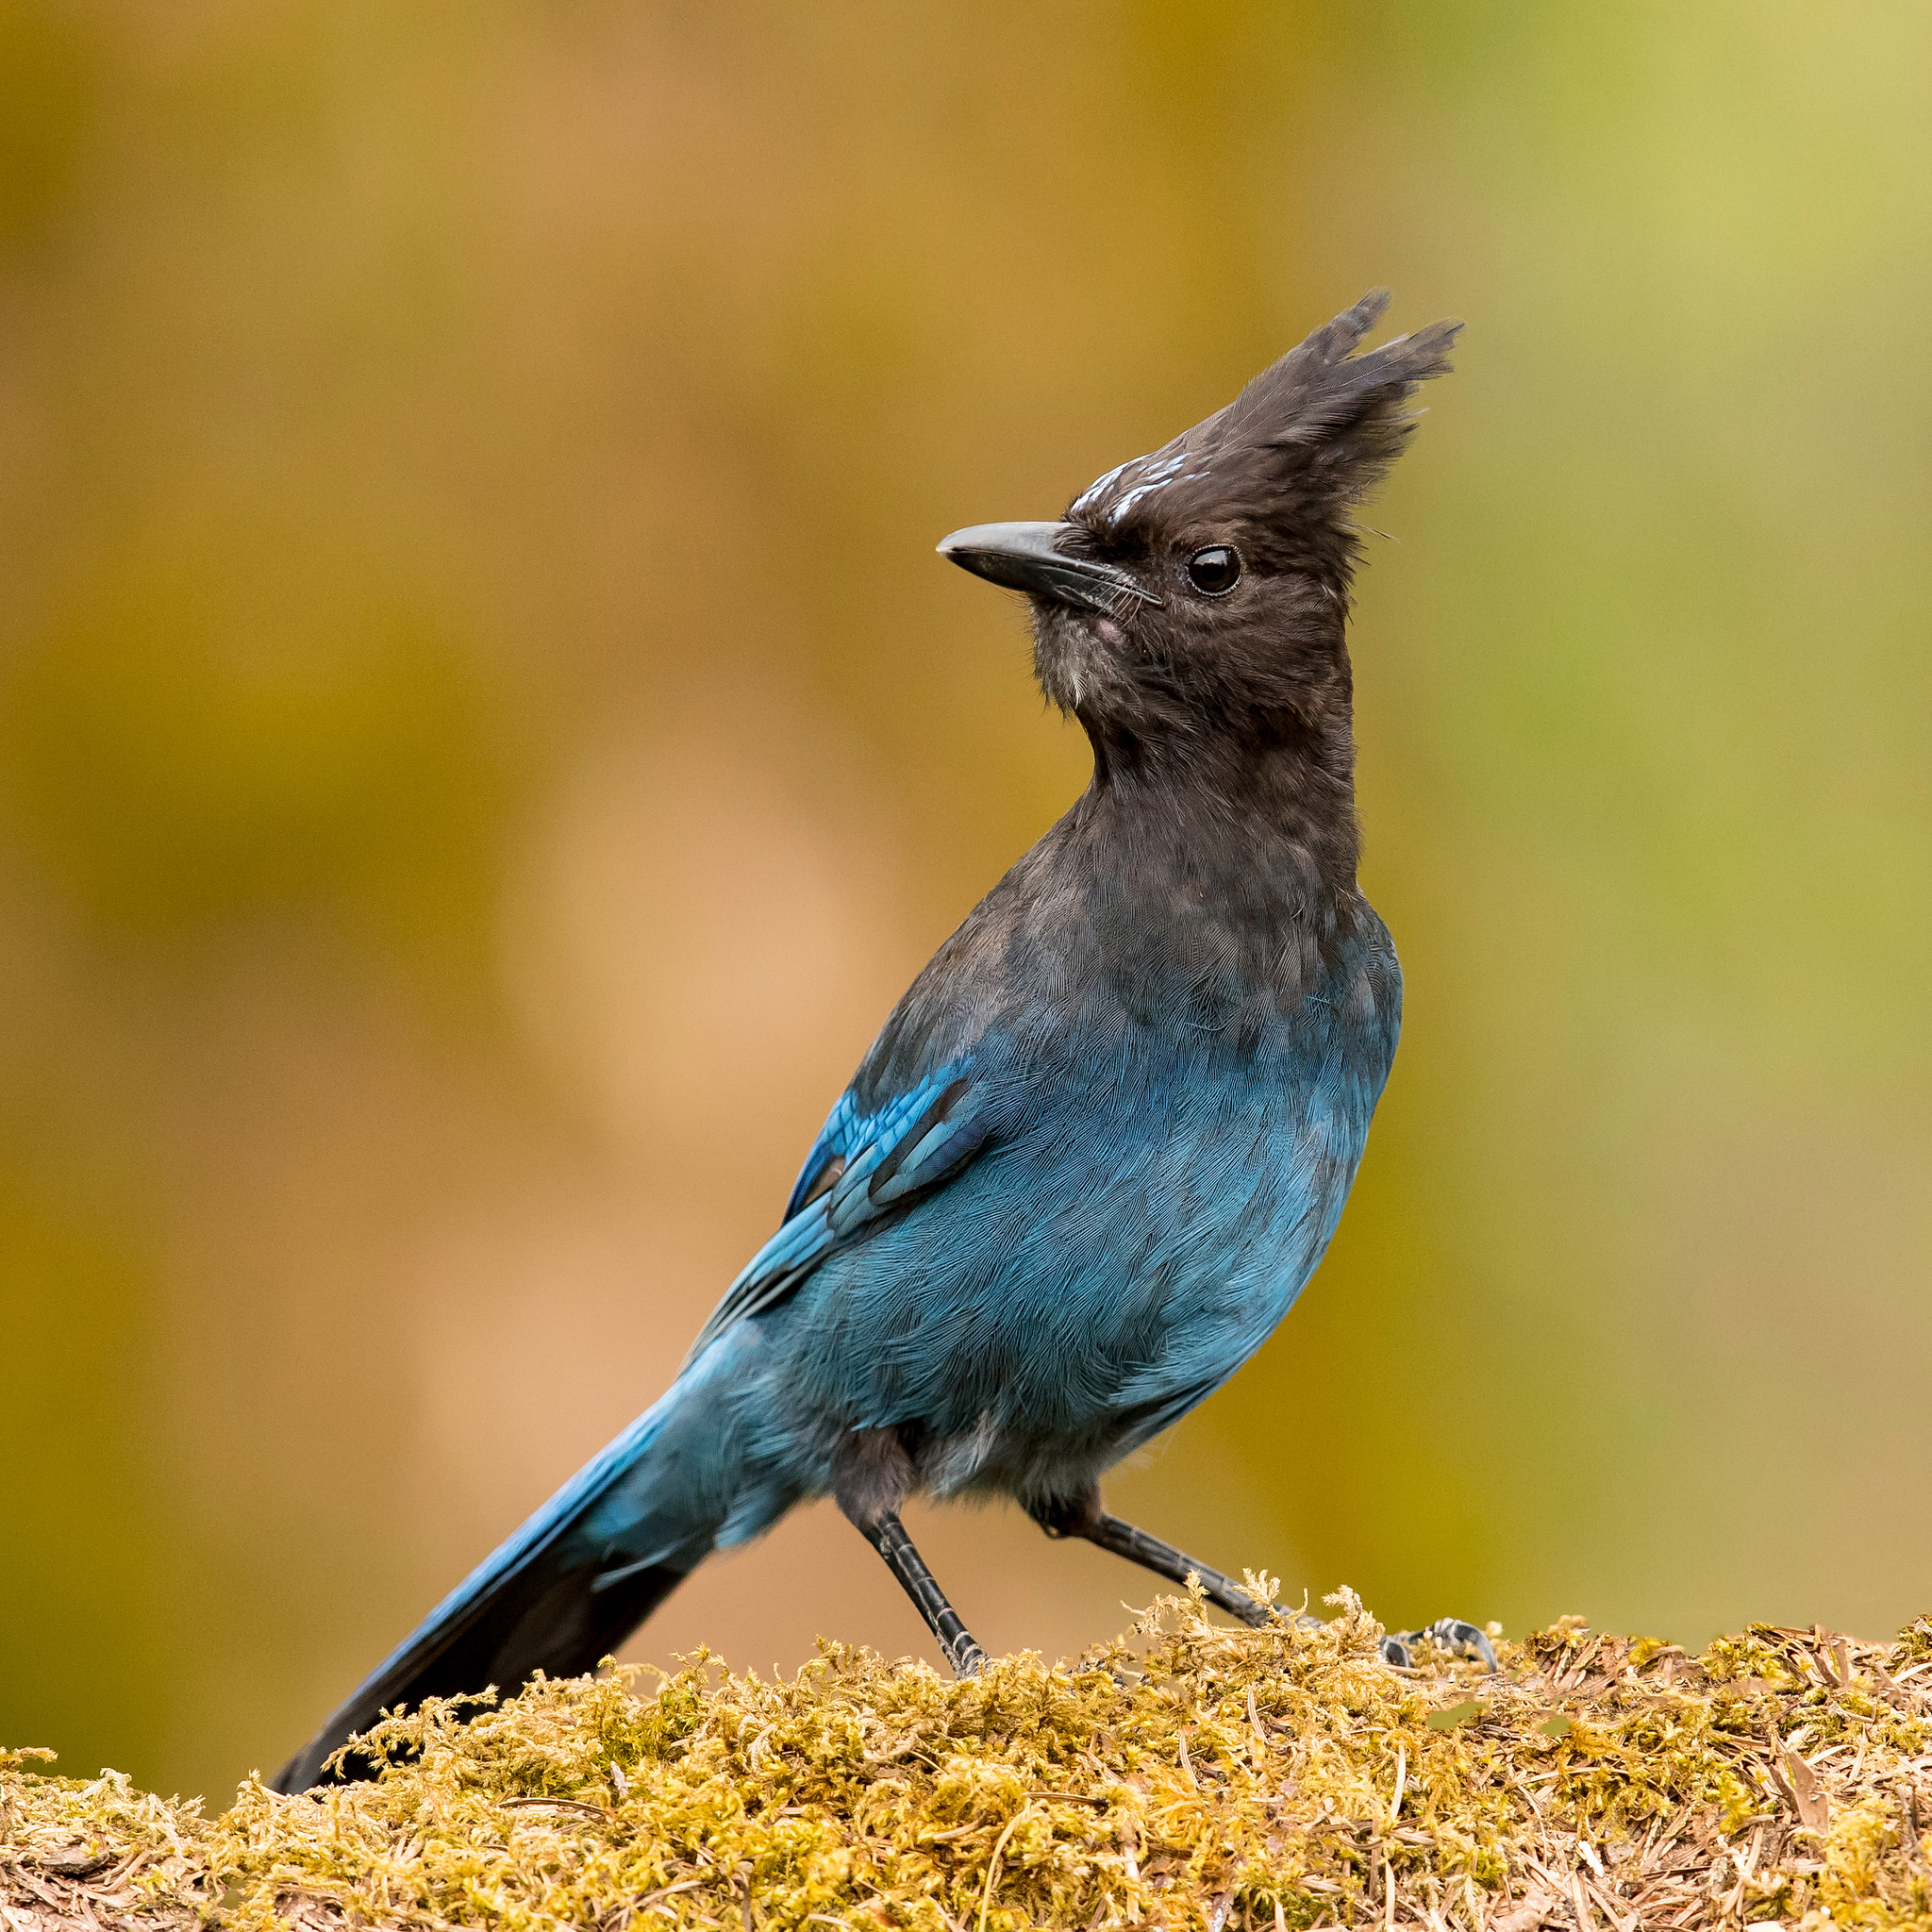 Photo: Stellar's Jay, by Mick Thompson